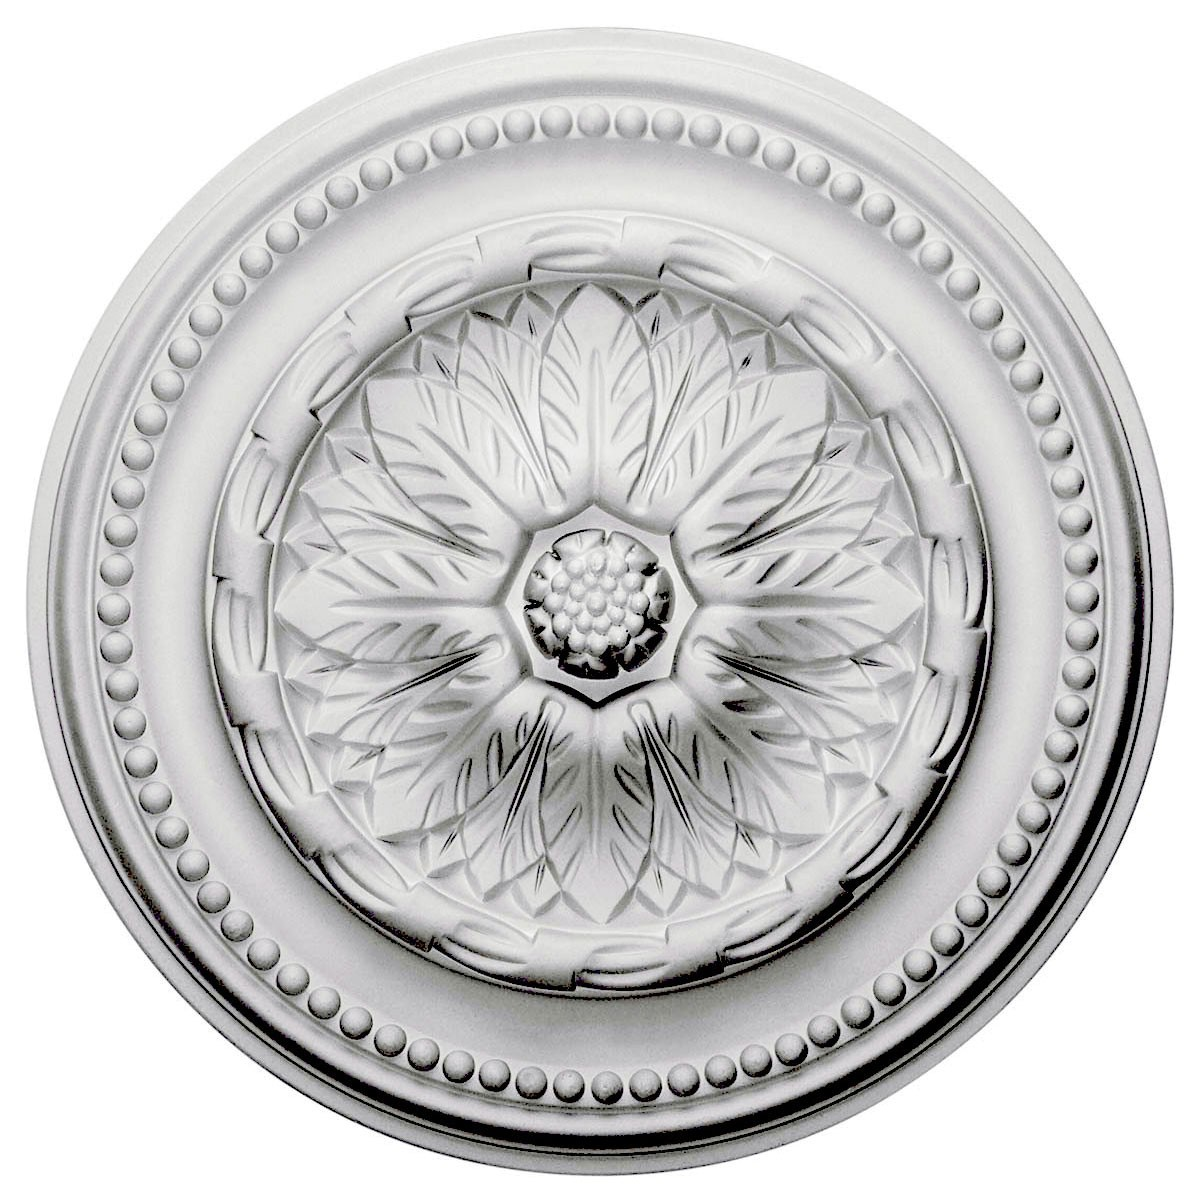 "EM-CM15CH - 15 3/4""OD x 1 7/8""P Chester Ceiling Medallion (Fits Canopies up to 2 1/4"")"